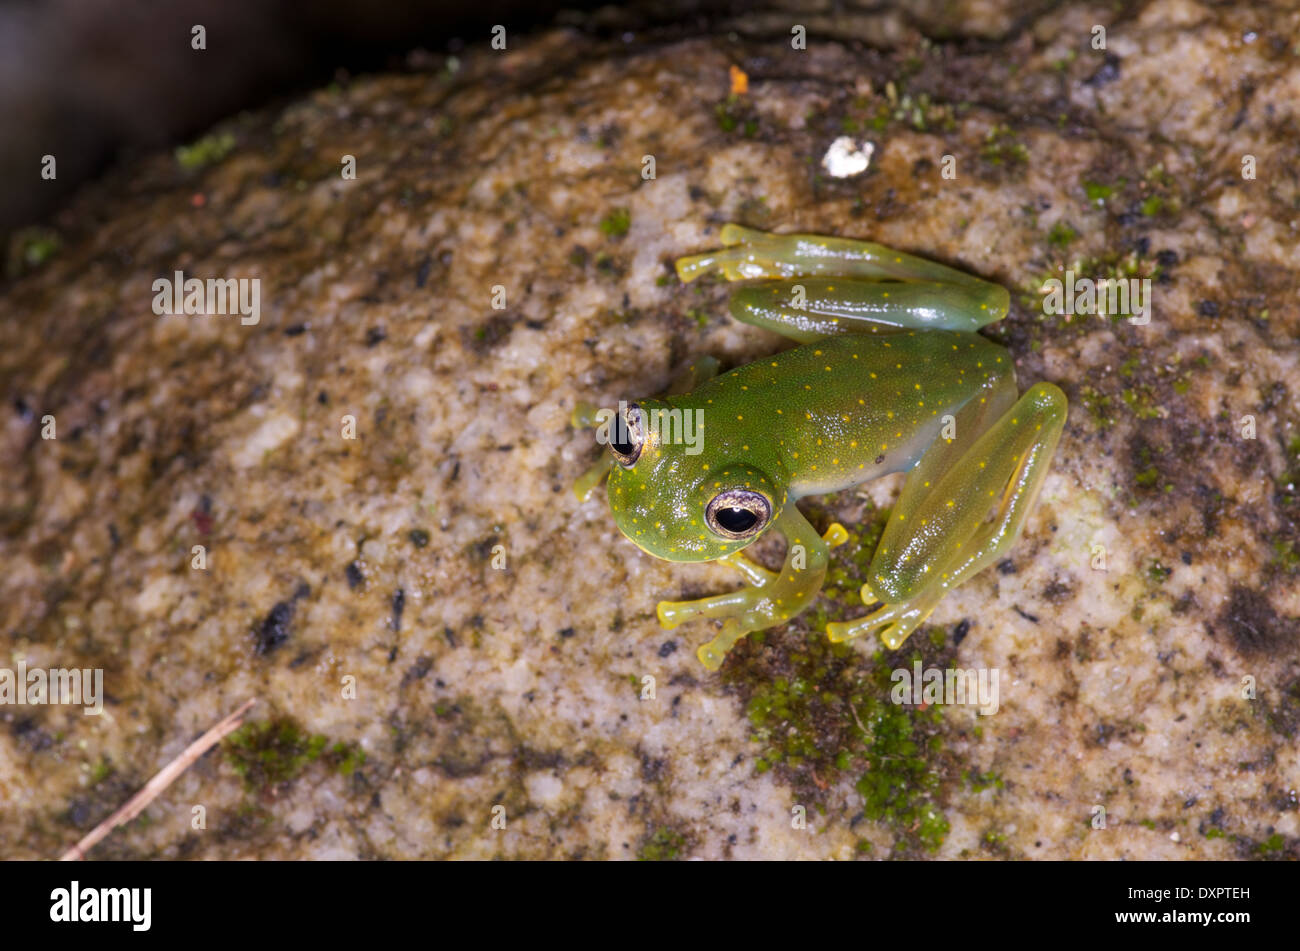 A Yellow-flecked Glass Frog (Sachatamia albomaculata) on a mossy rock in El Valle de Antón, Coclé, Panama. - Stock Image